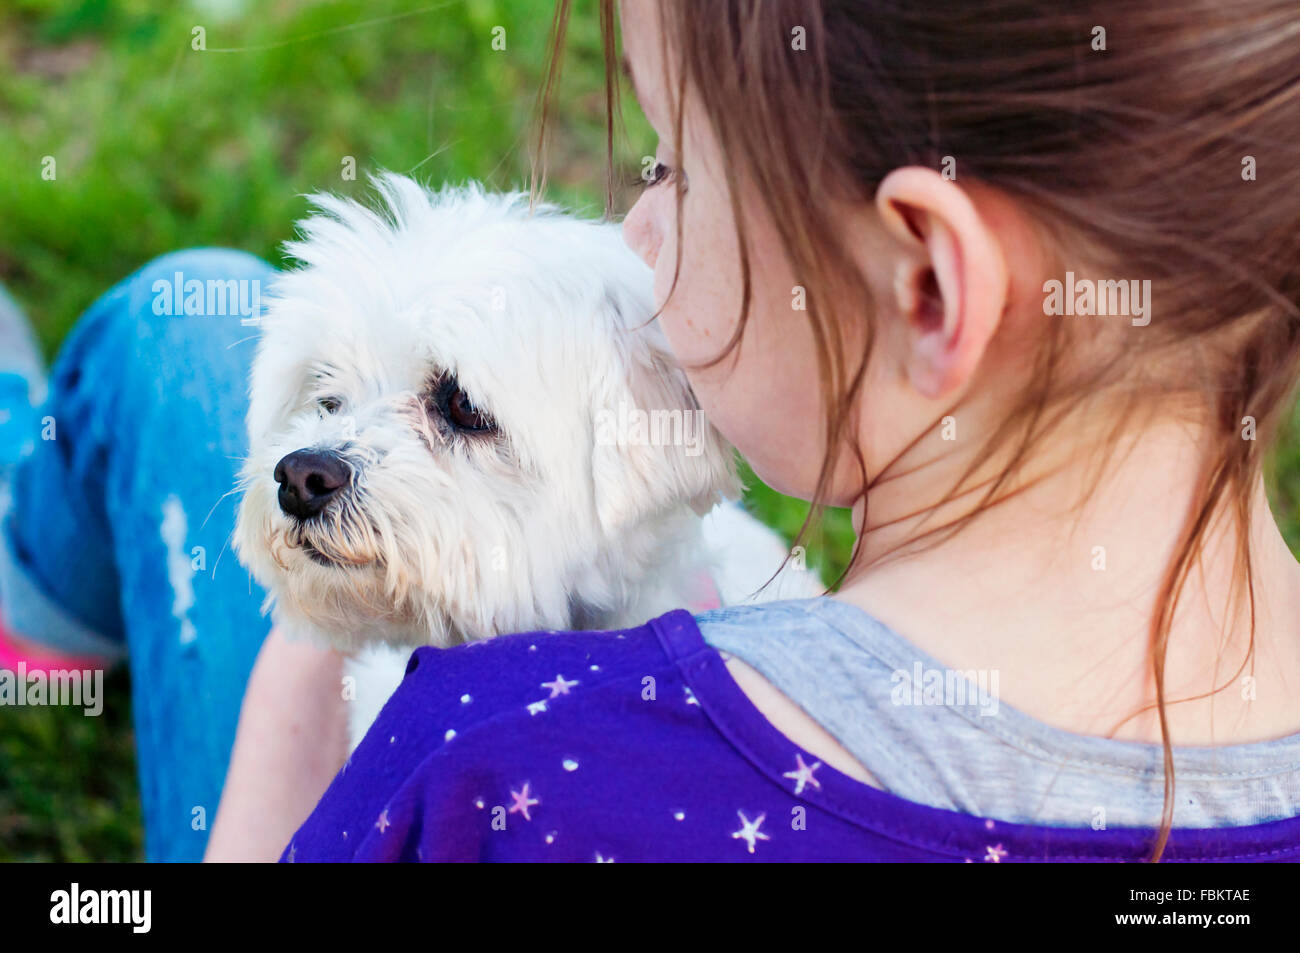 Girl holding dog Banque D'Images